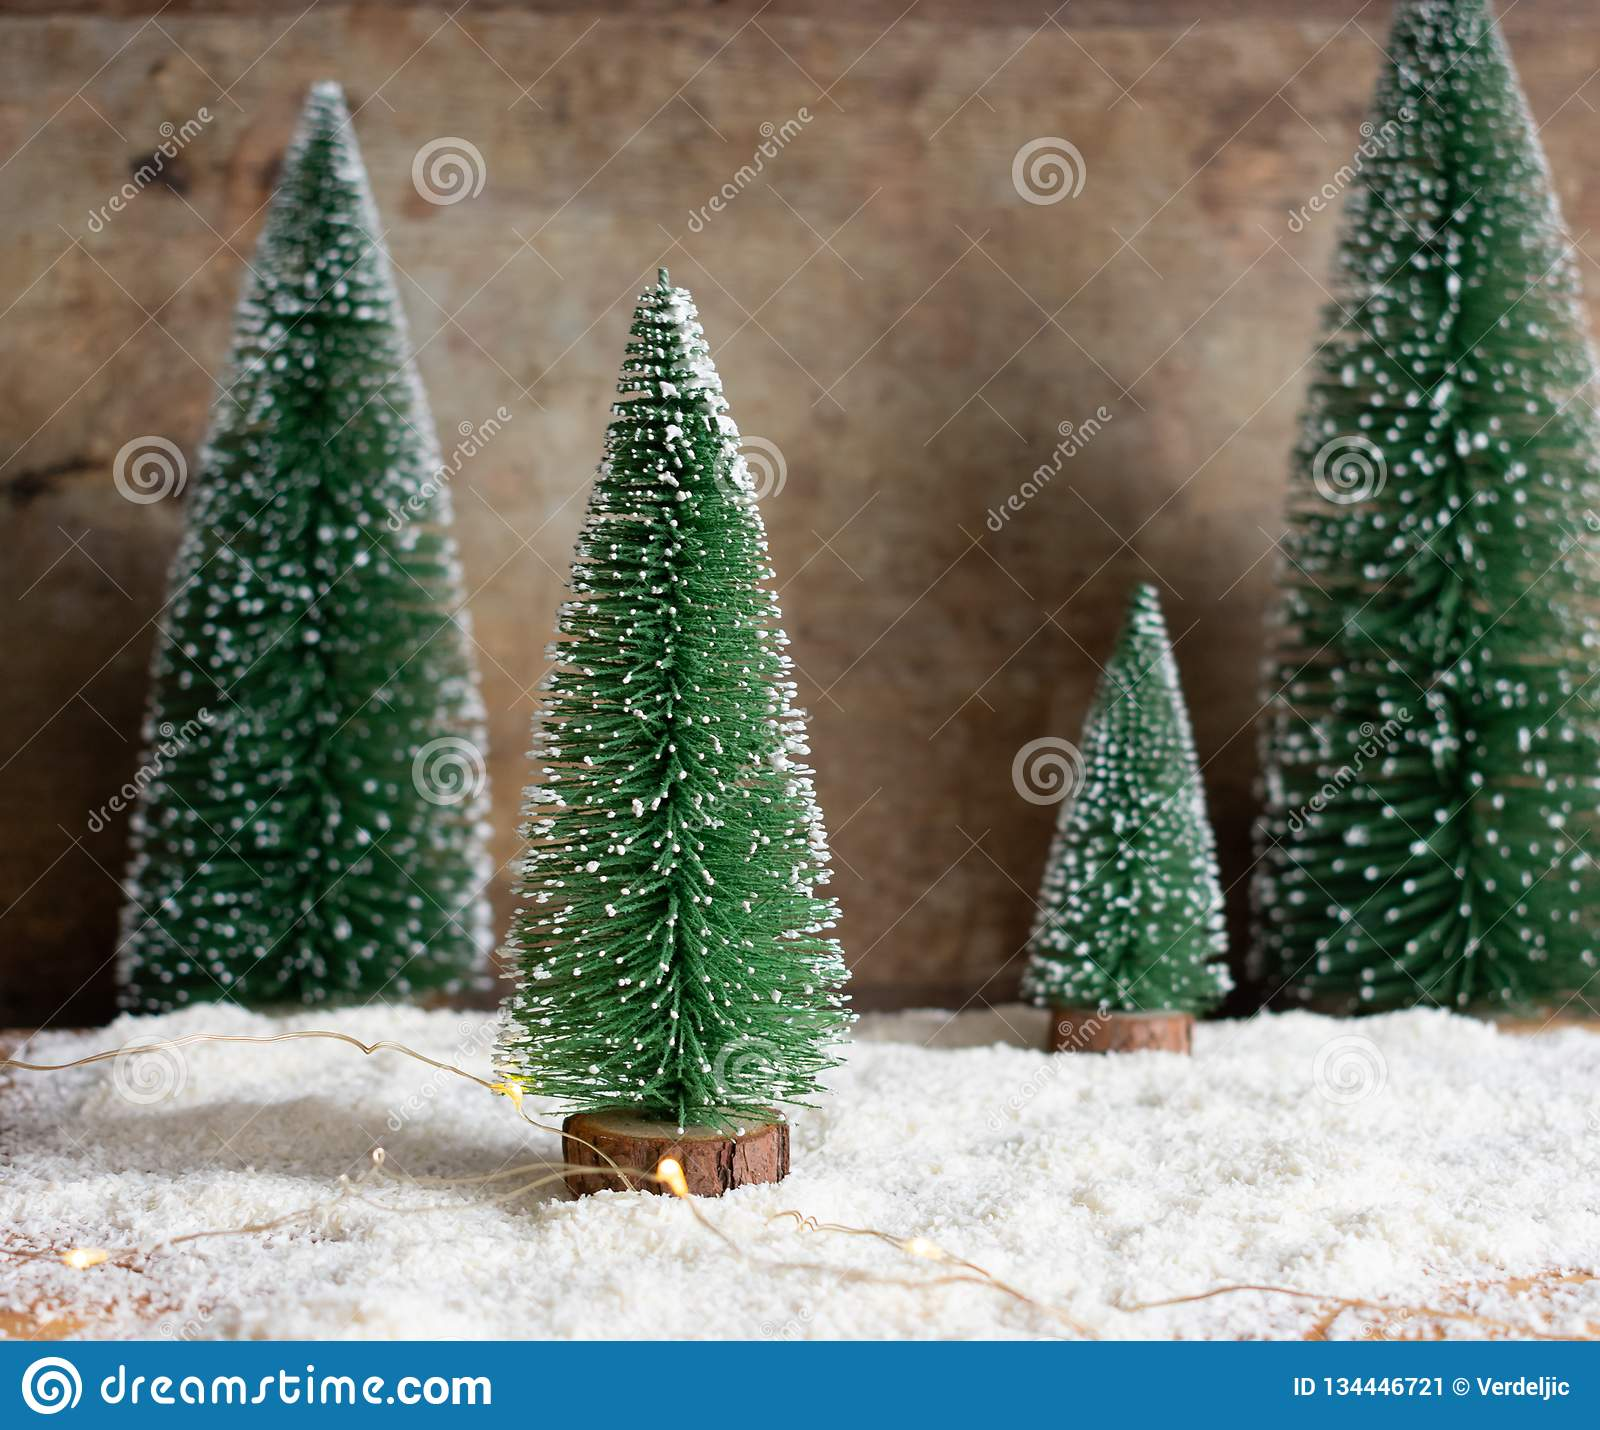 Green Snowy Christmas Trees Decoration And Lights On Wooden Background Stock Image Image Of Composition Close 134446721